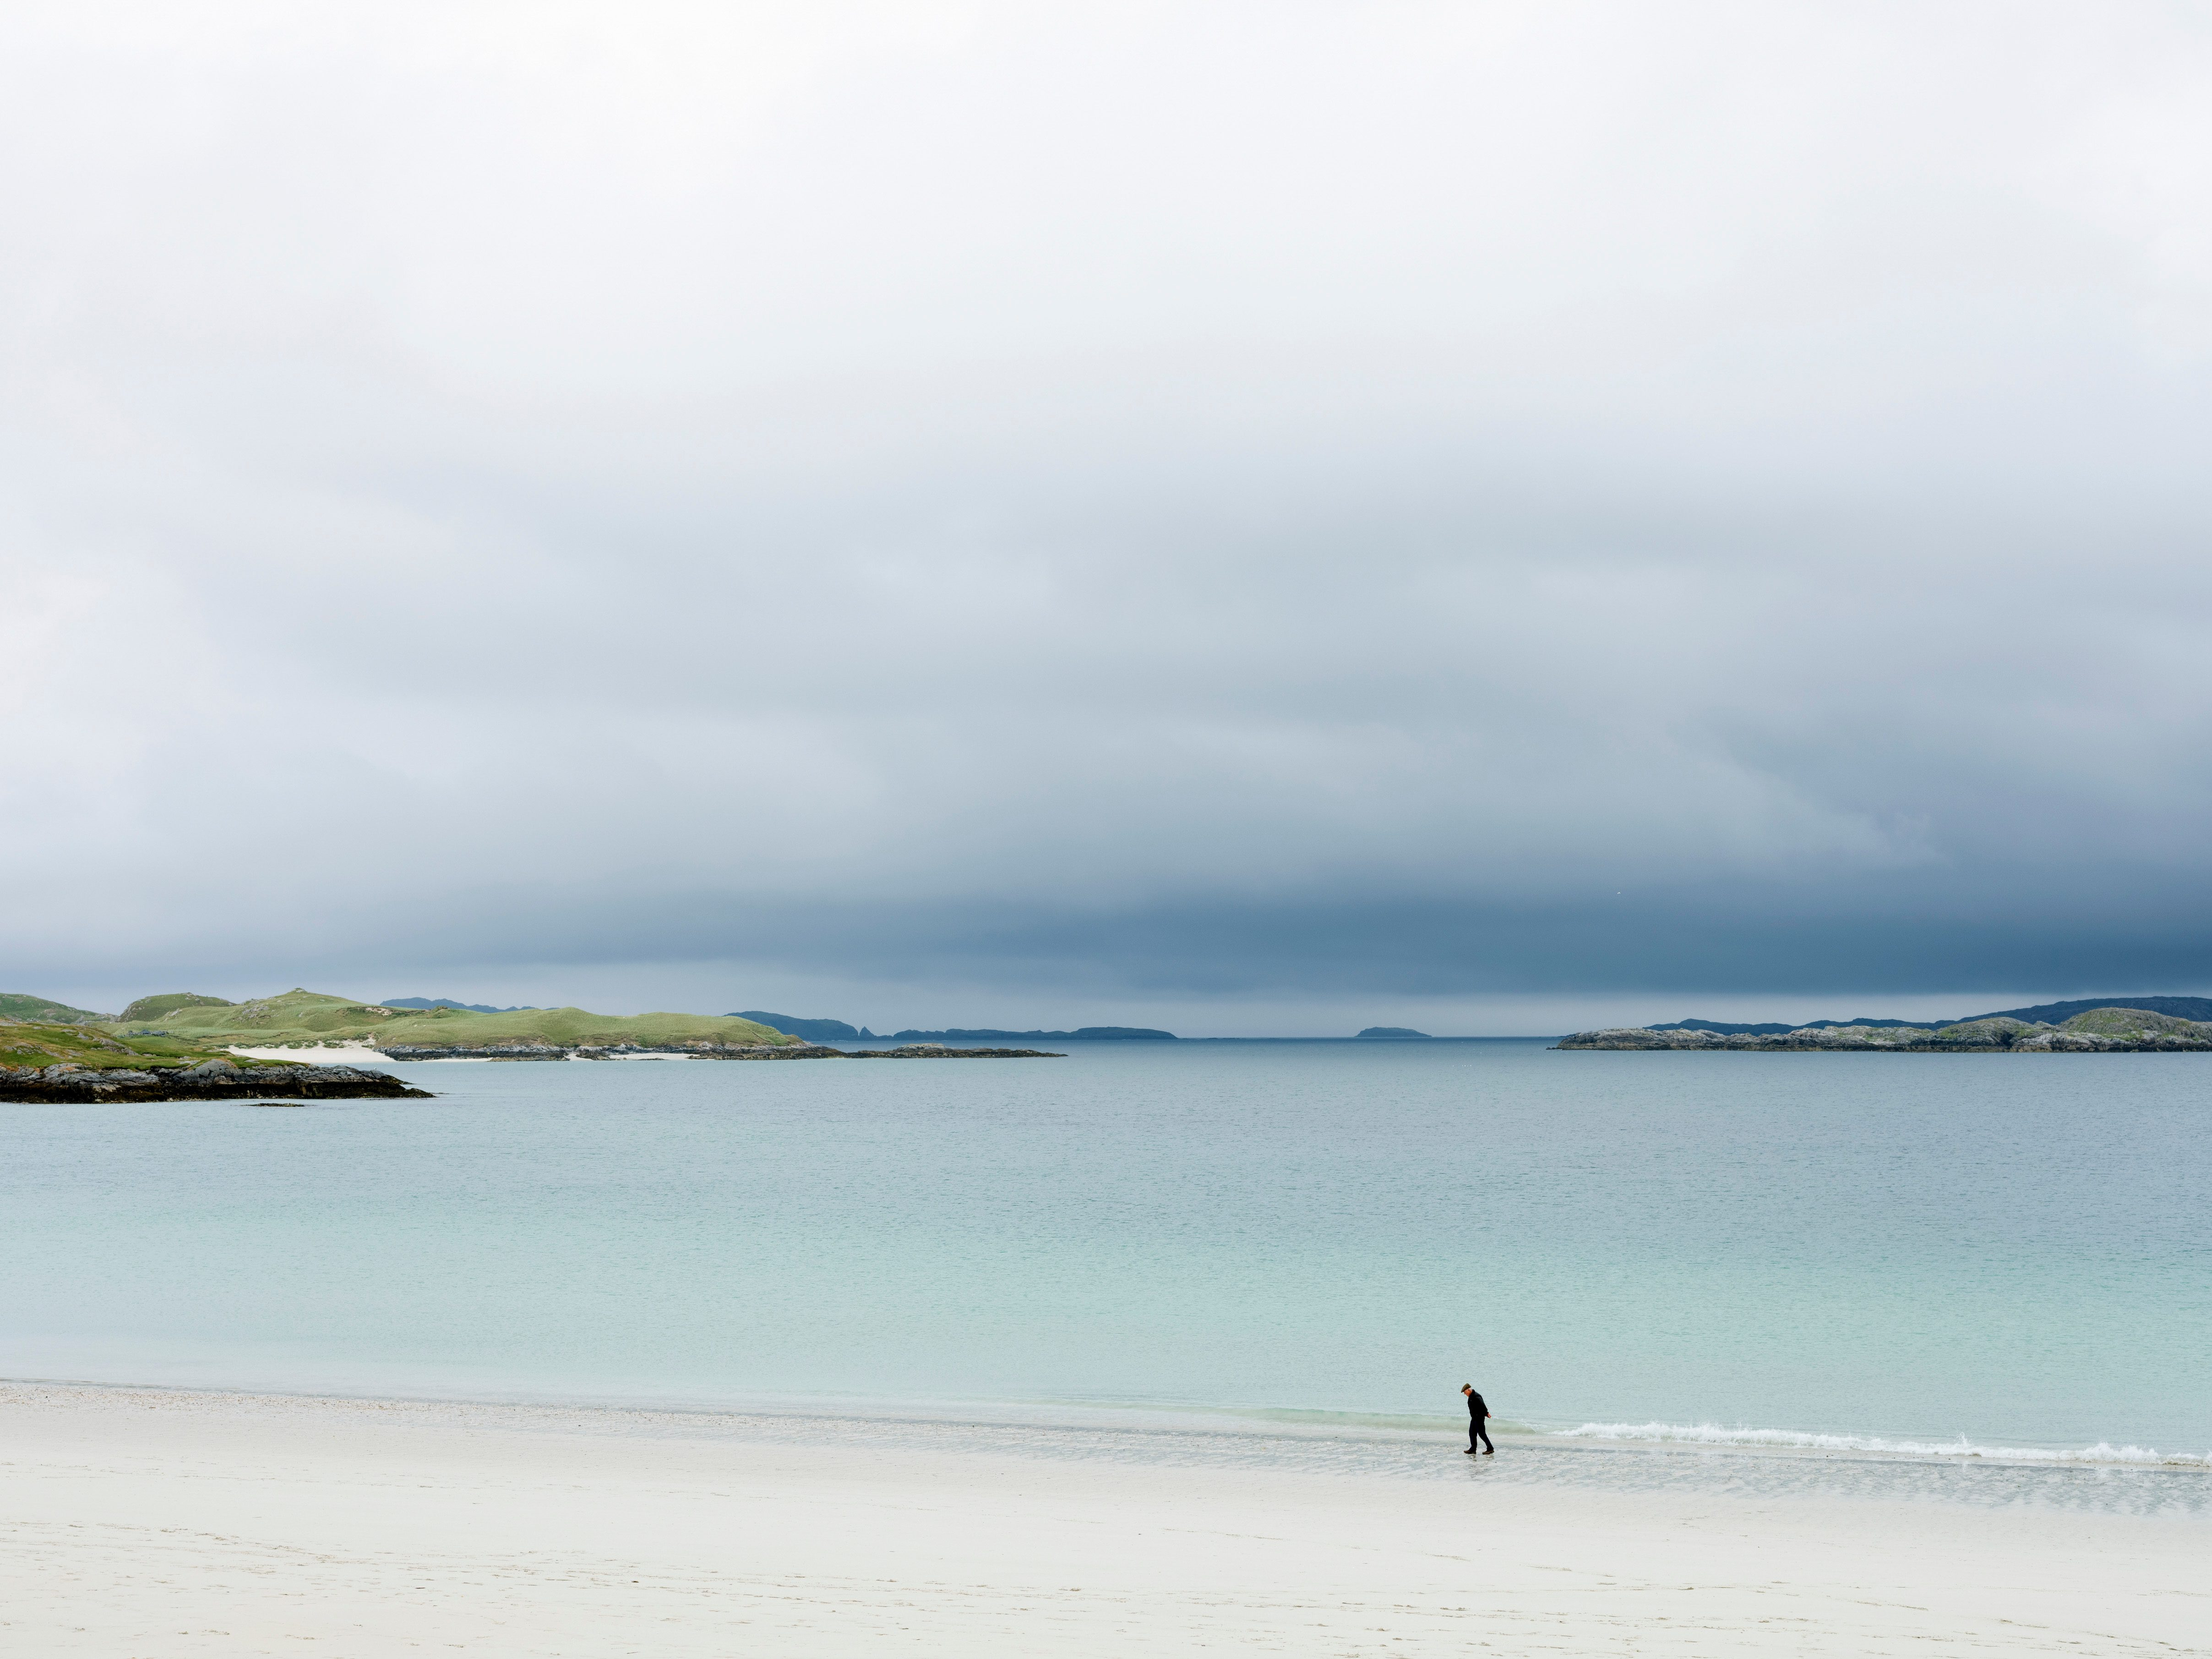 Walking On The Beach On The Outer Hebrides Of Scotland